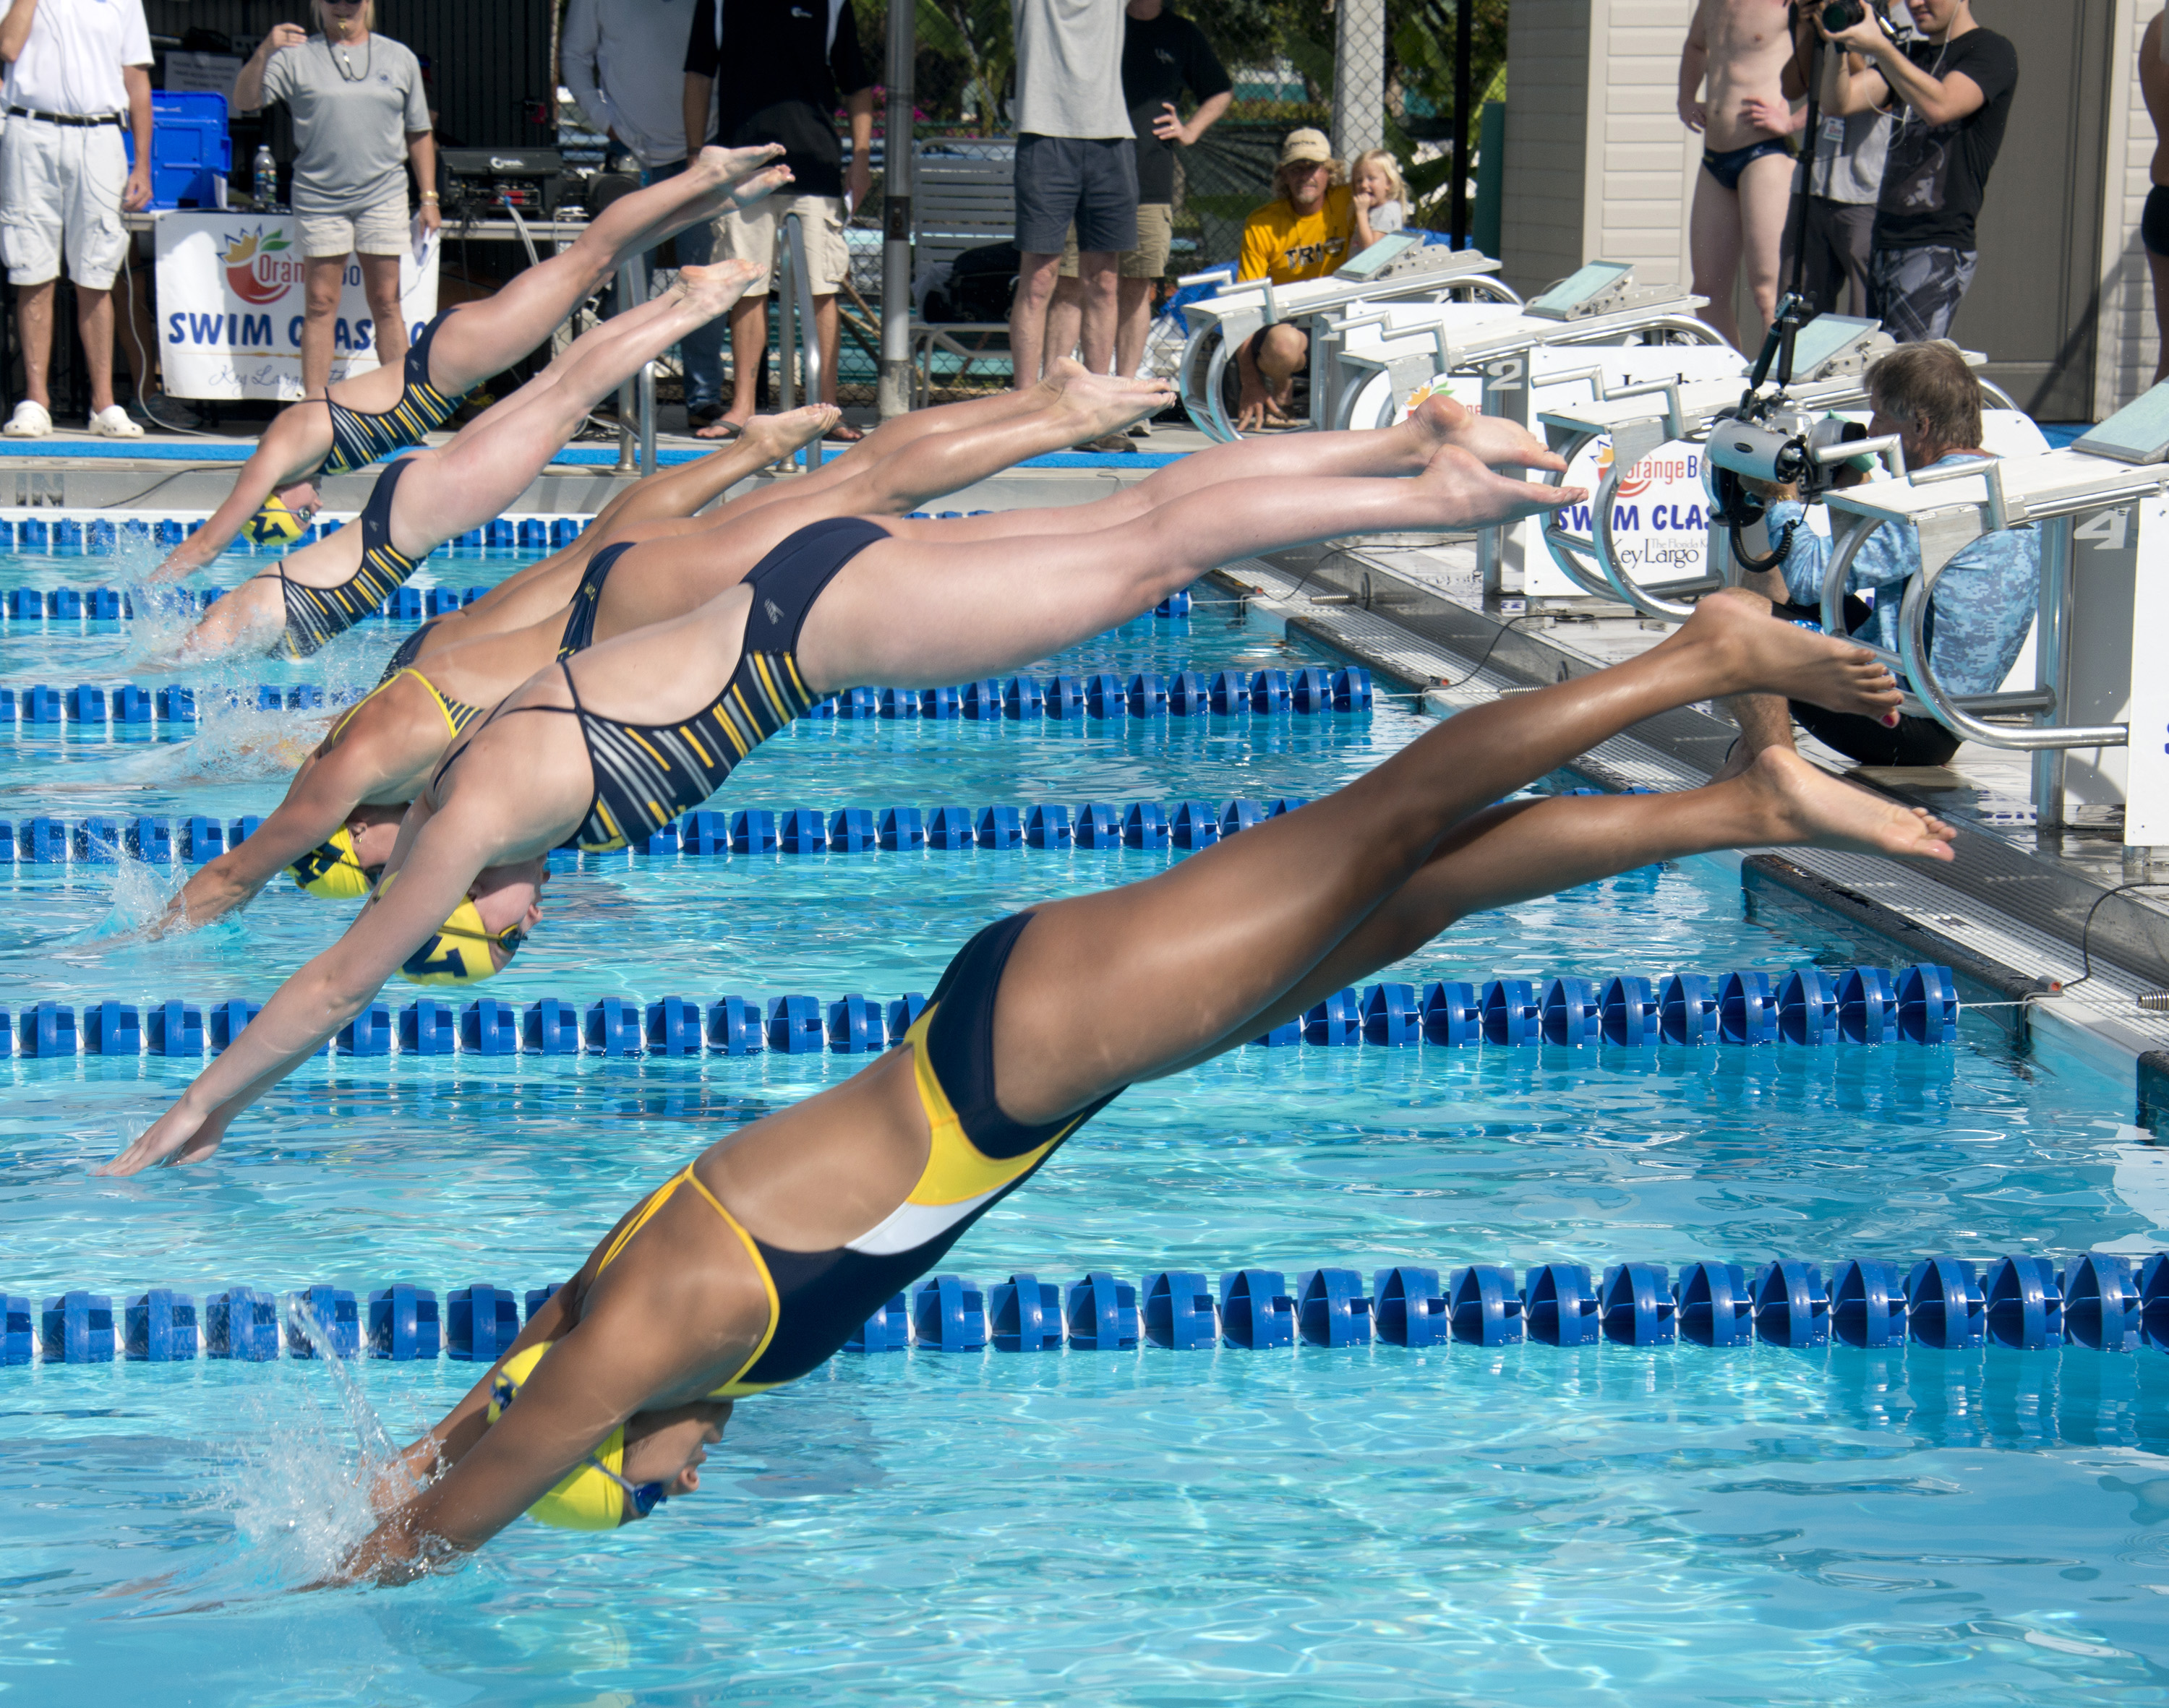 collegiate swimmers leap off the starting blocks for the 50 meter womens freestyle event saturday